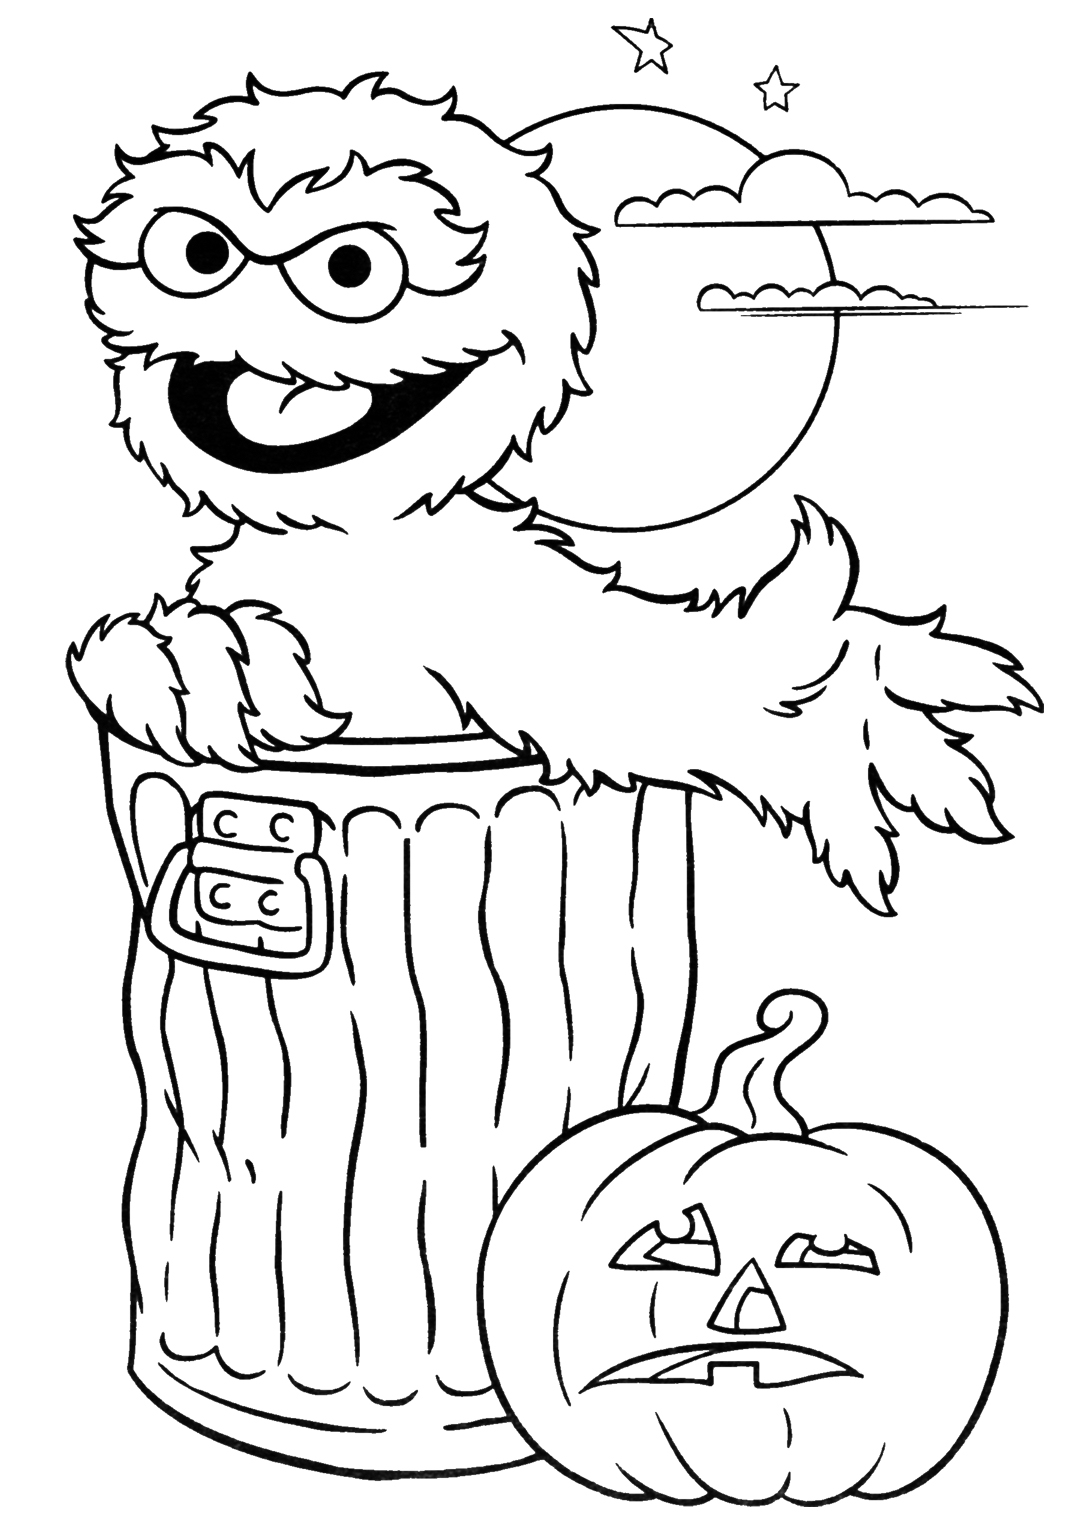 Garbage Can Coloring Page At Getdrawings Com Free For